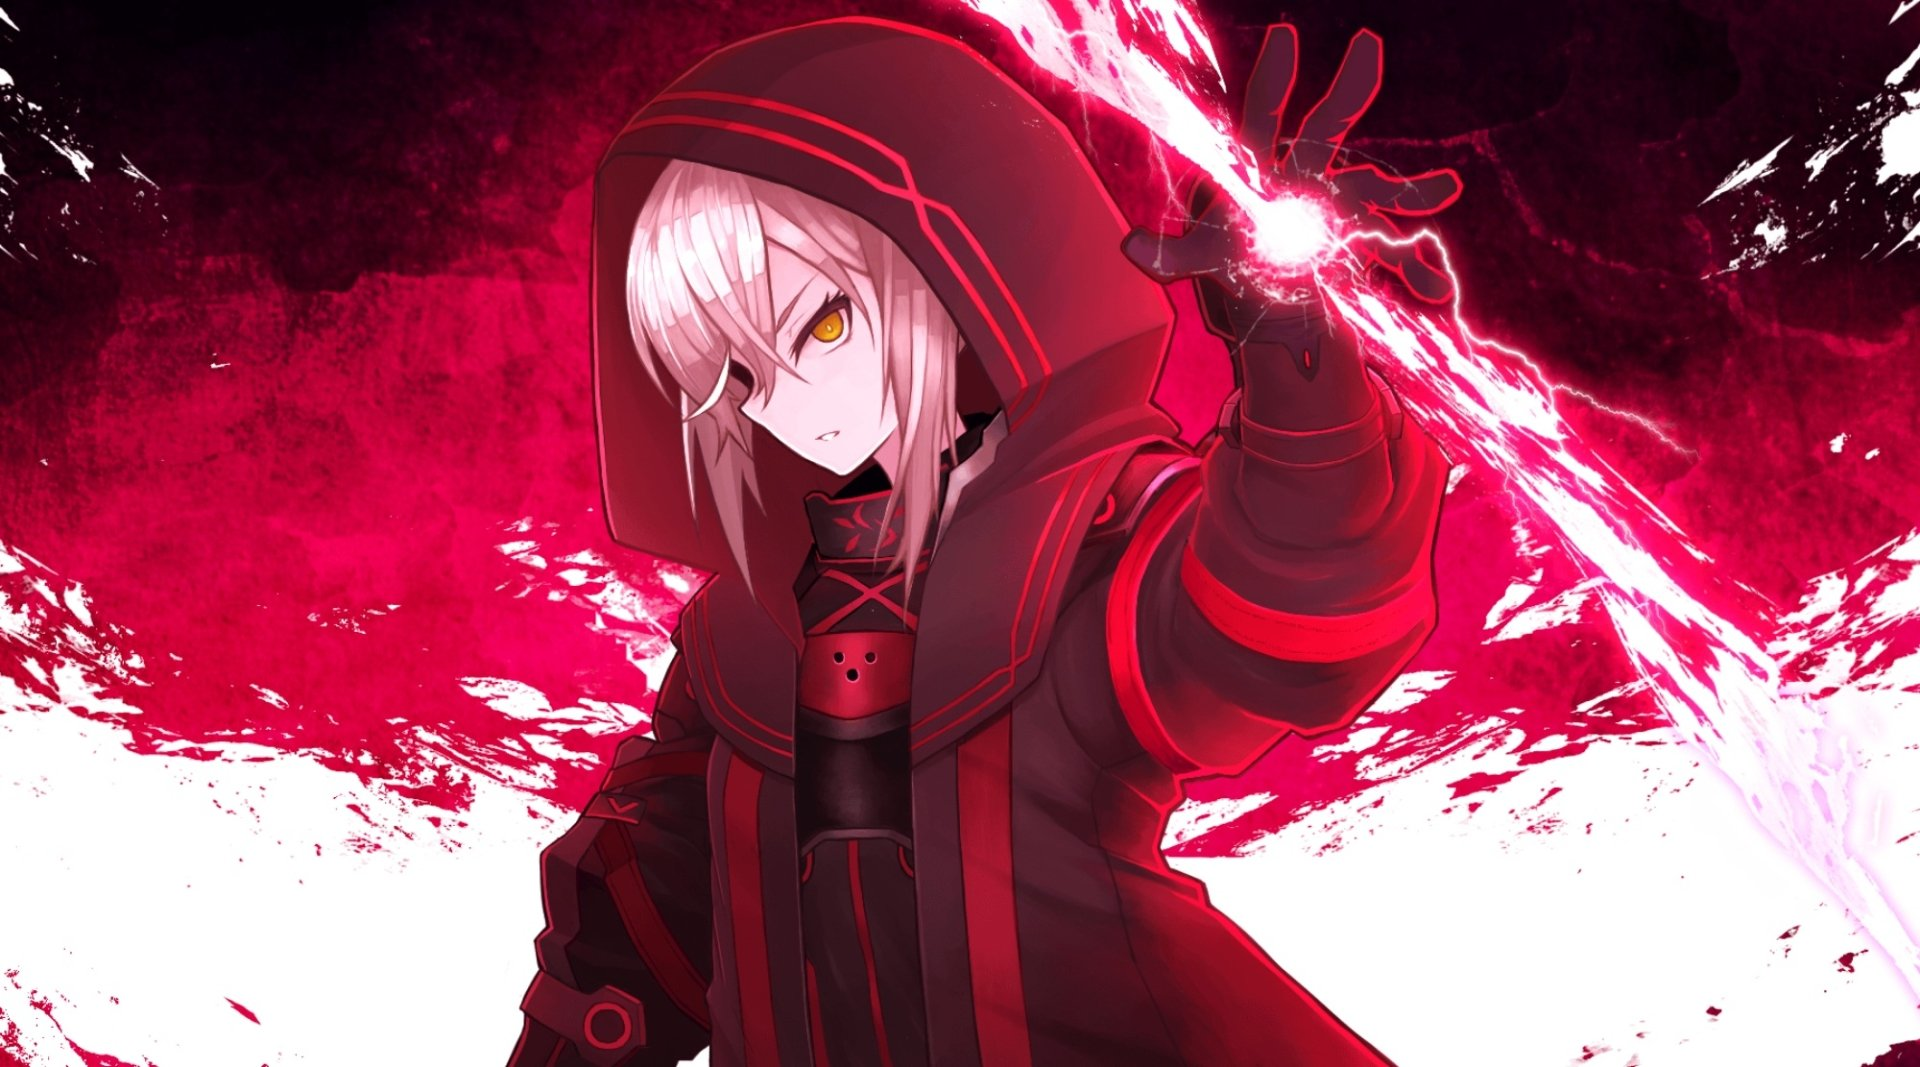 Live Pc Girl Wallpapers 3 Mysterious Heroine X Alter Hd Wallpapers Background